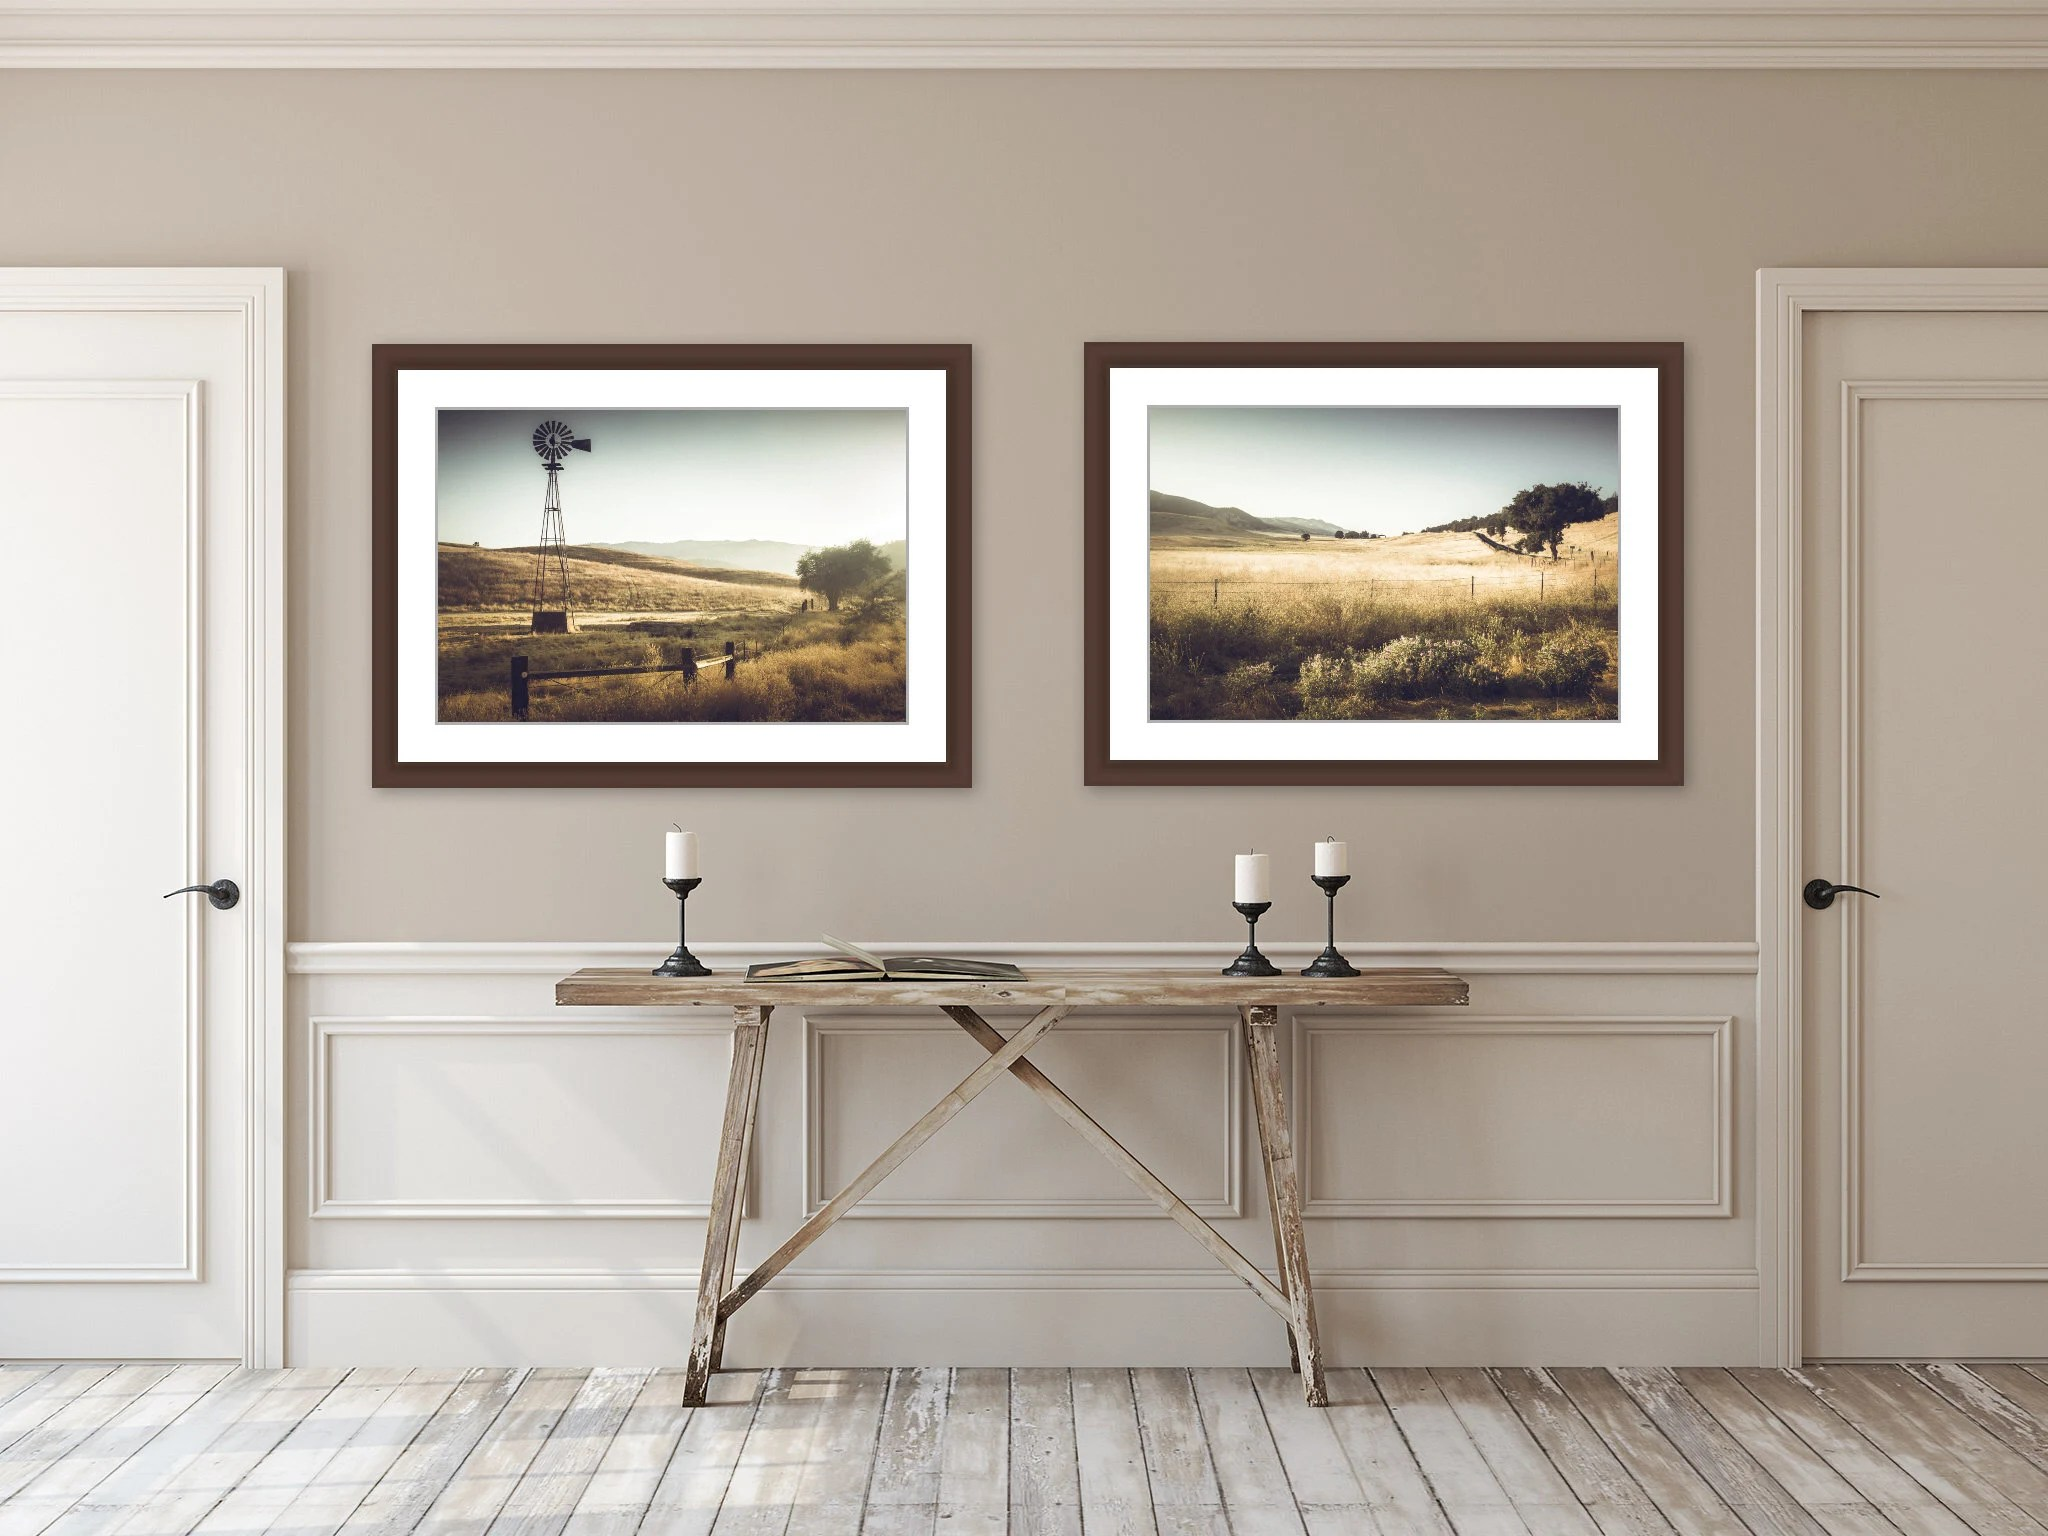 Landscape Photography Rustic Home Decor Windmill Wall